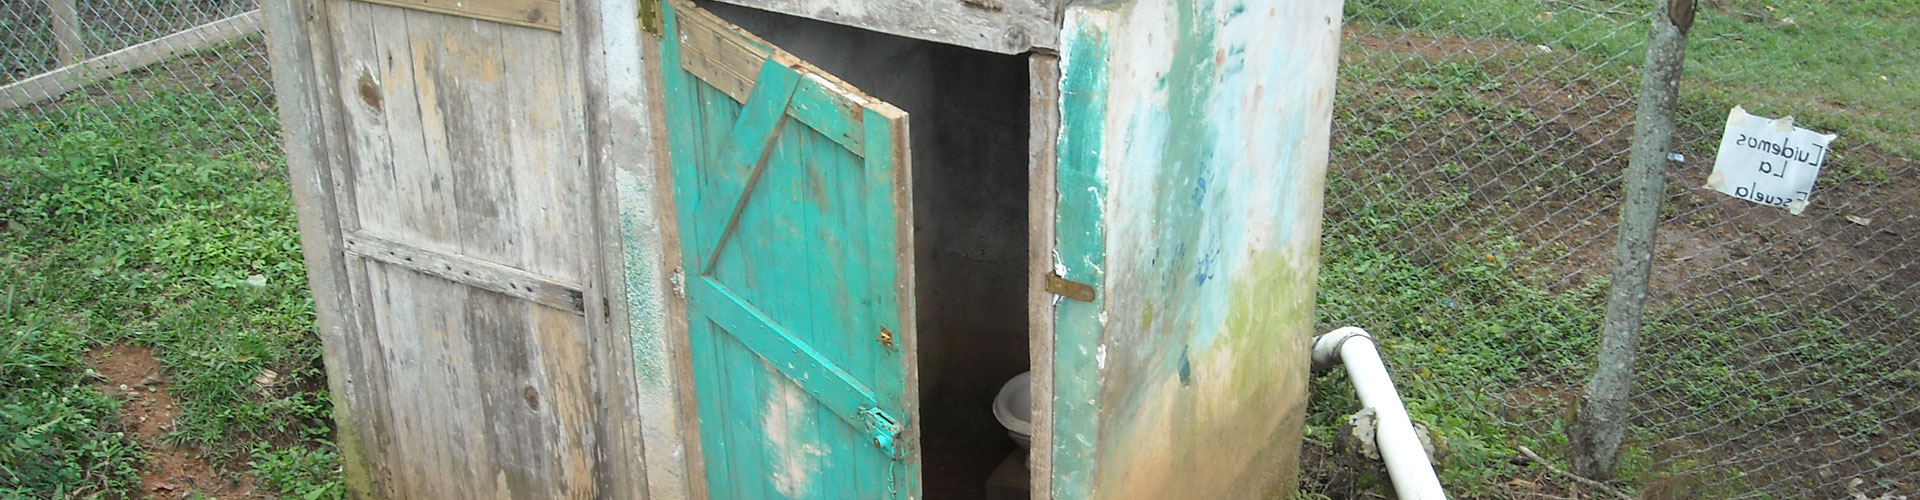 Inadequate Sanitary Facilities